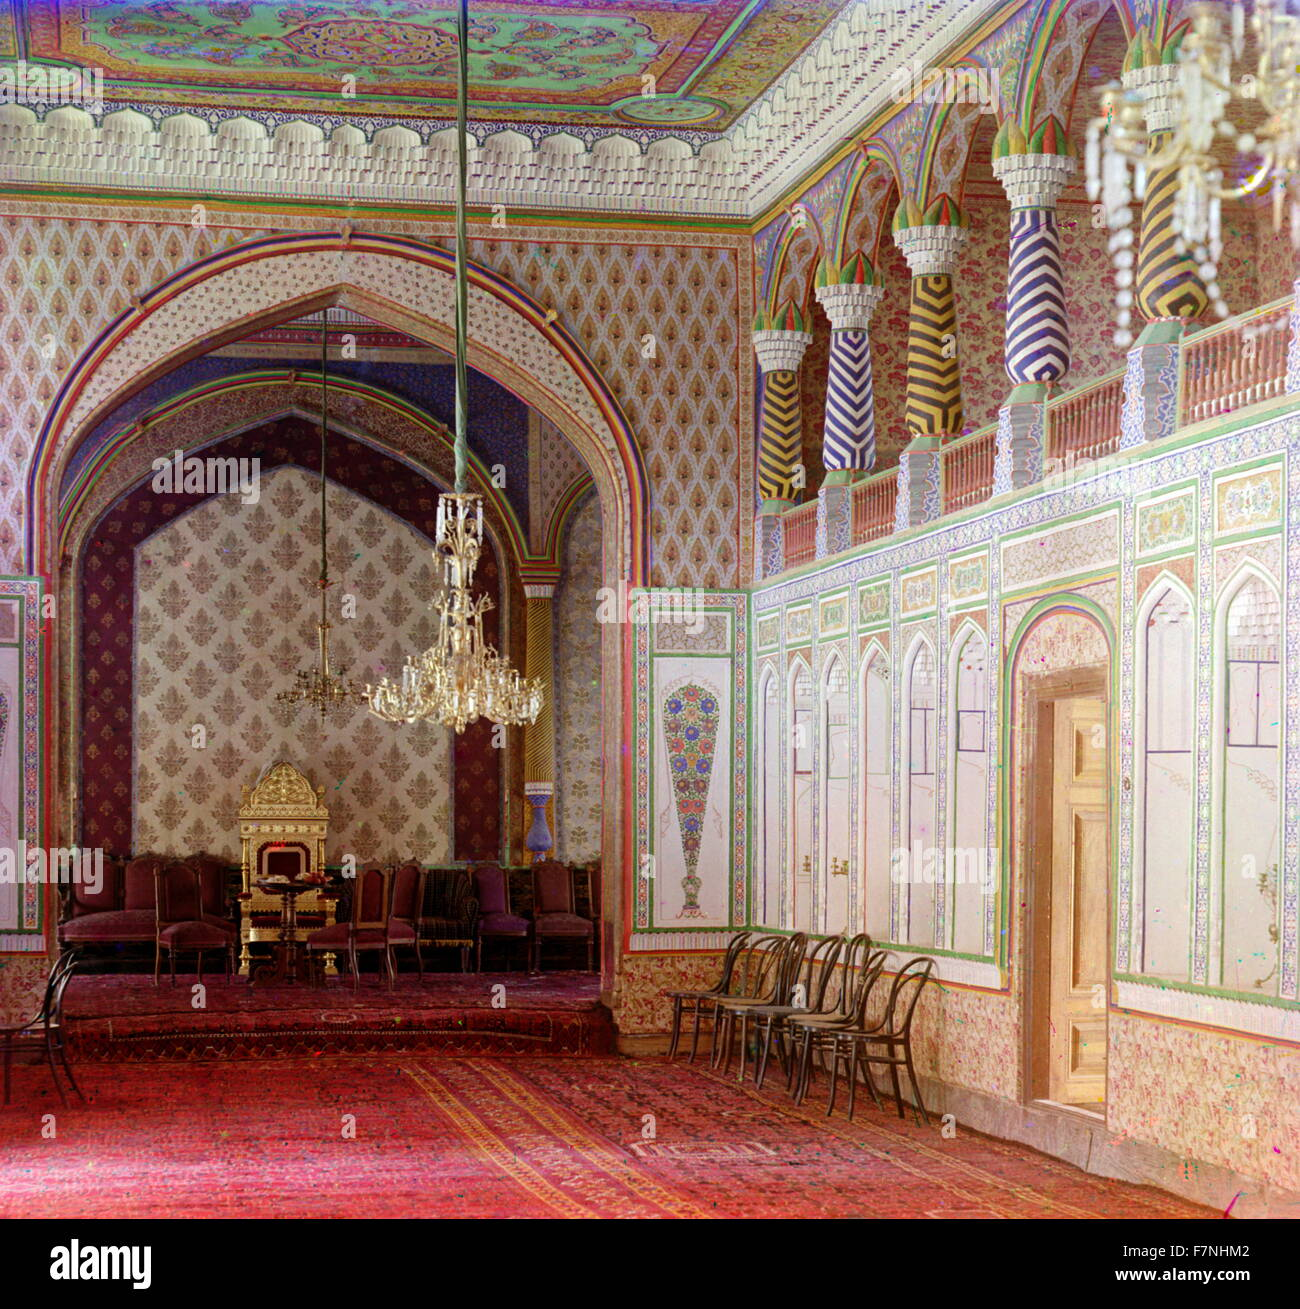 In the country palace of the Bukhara Emir. Bukhara - Stock Image